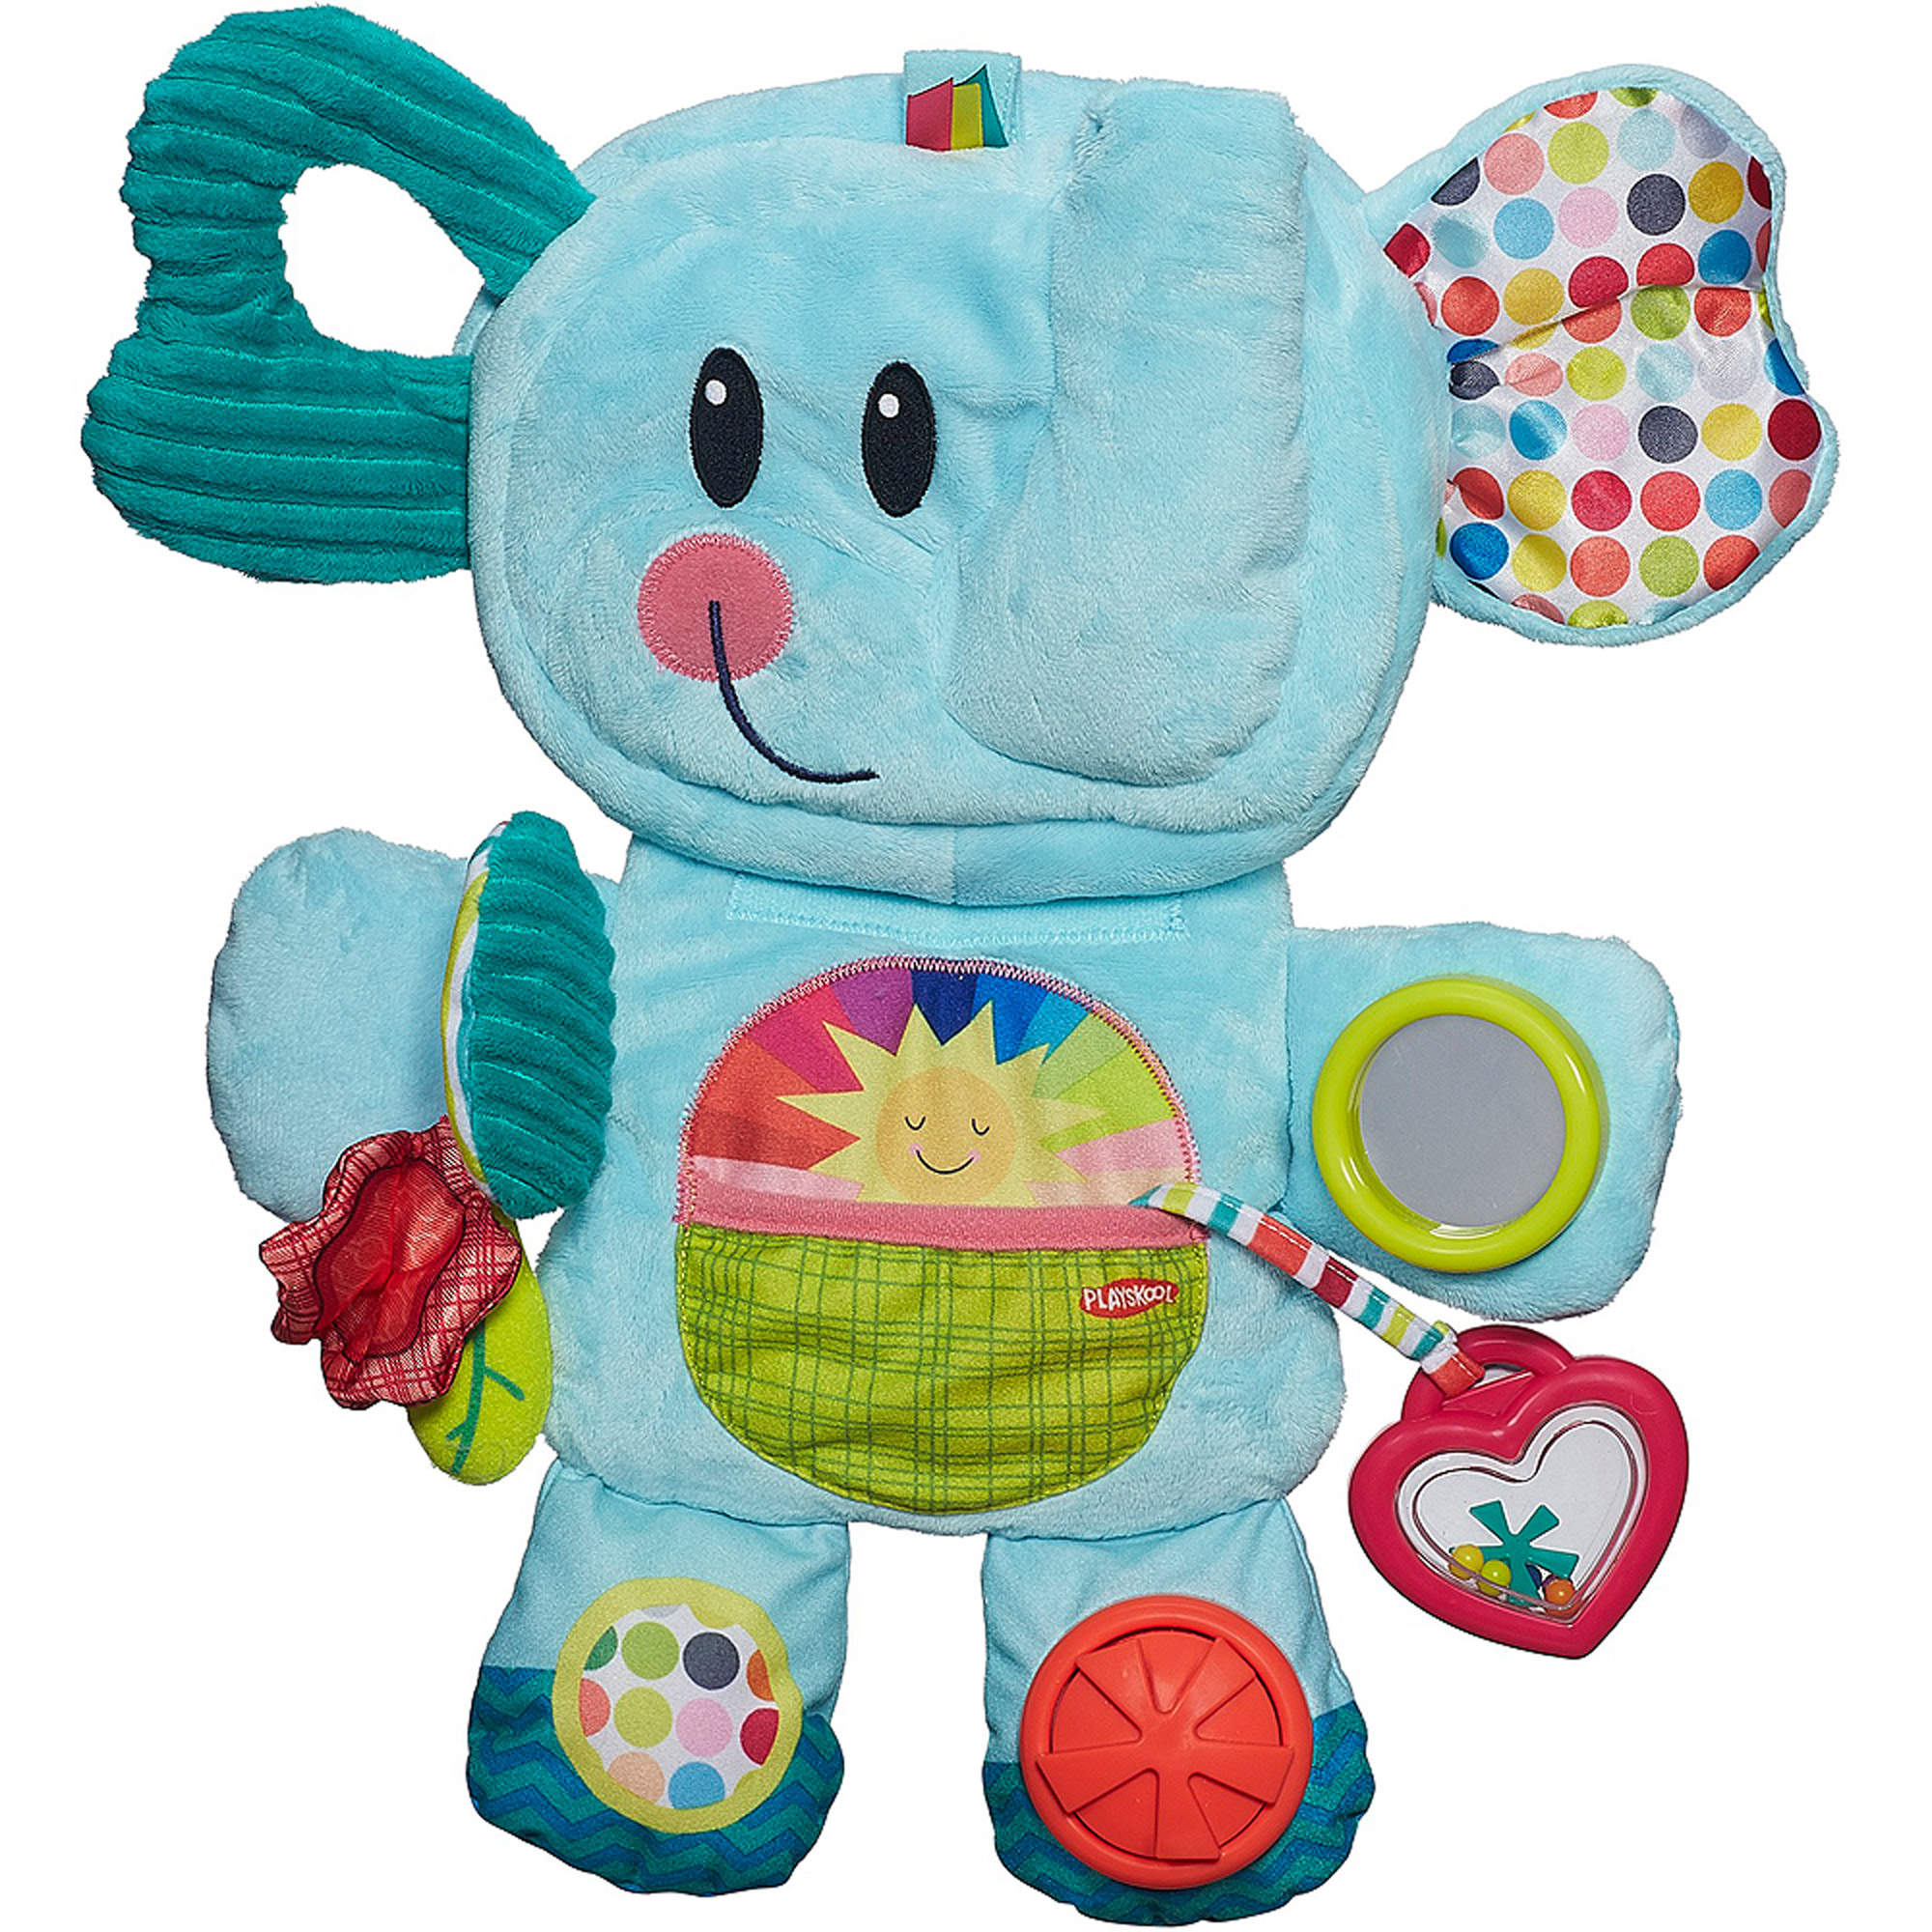 Playskool Fold 'n Go Busy Elephant, Blue by Playskool